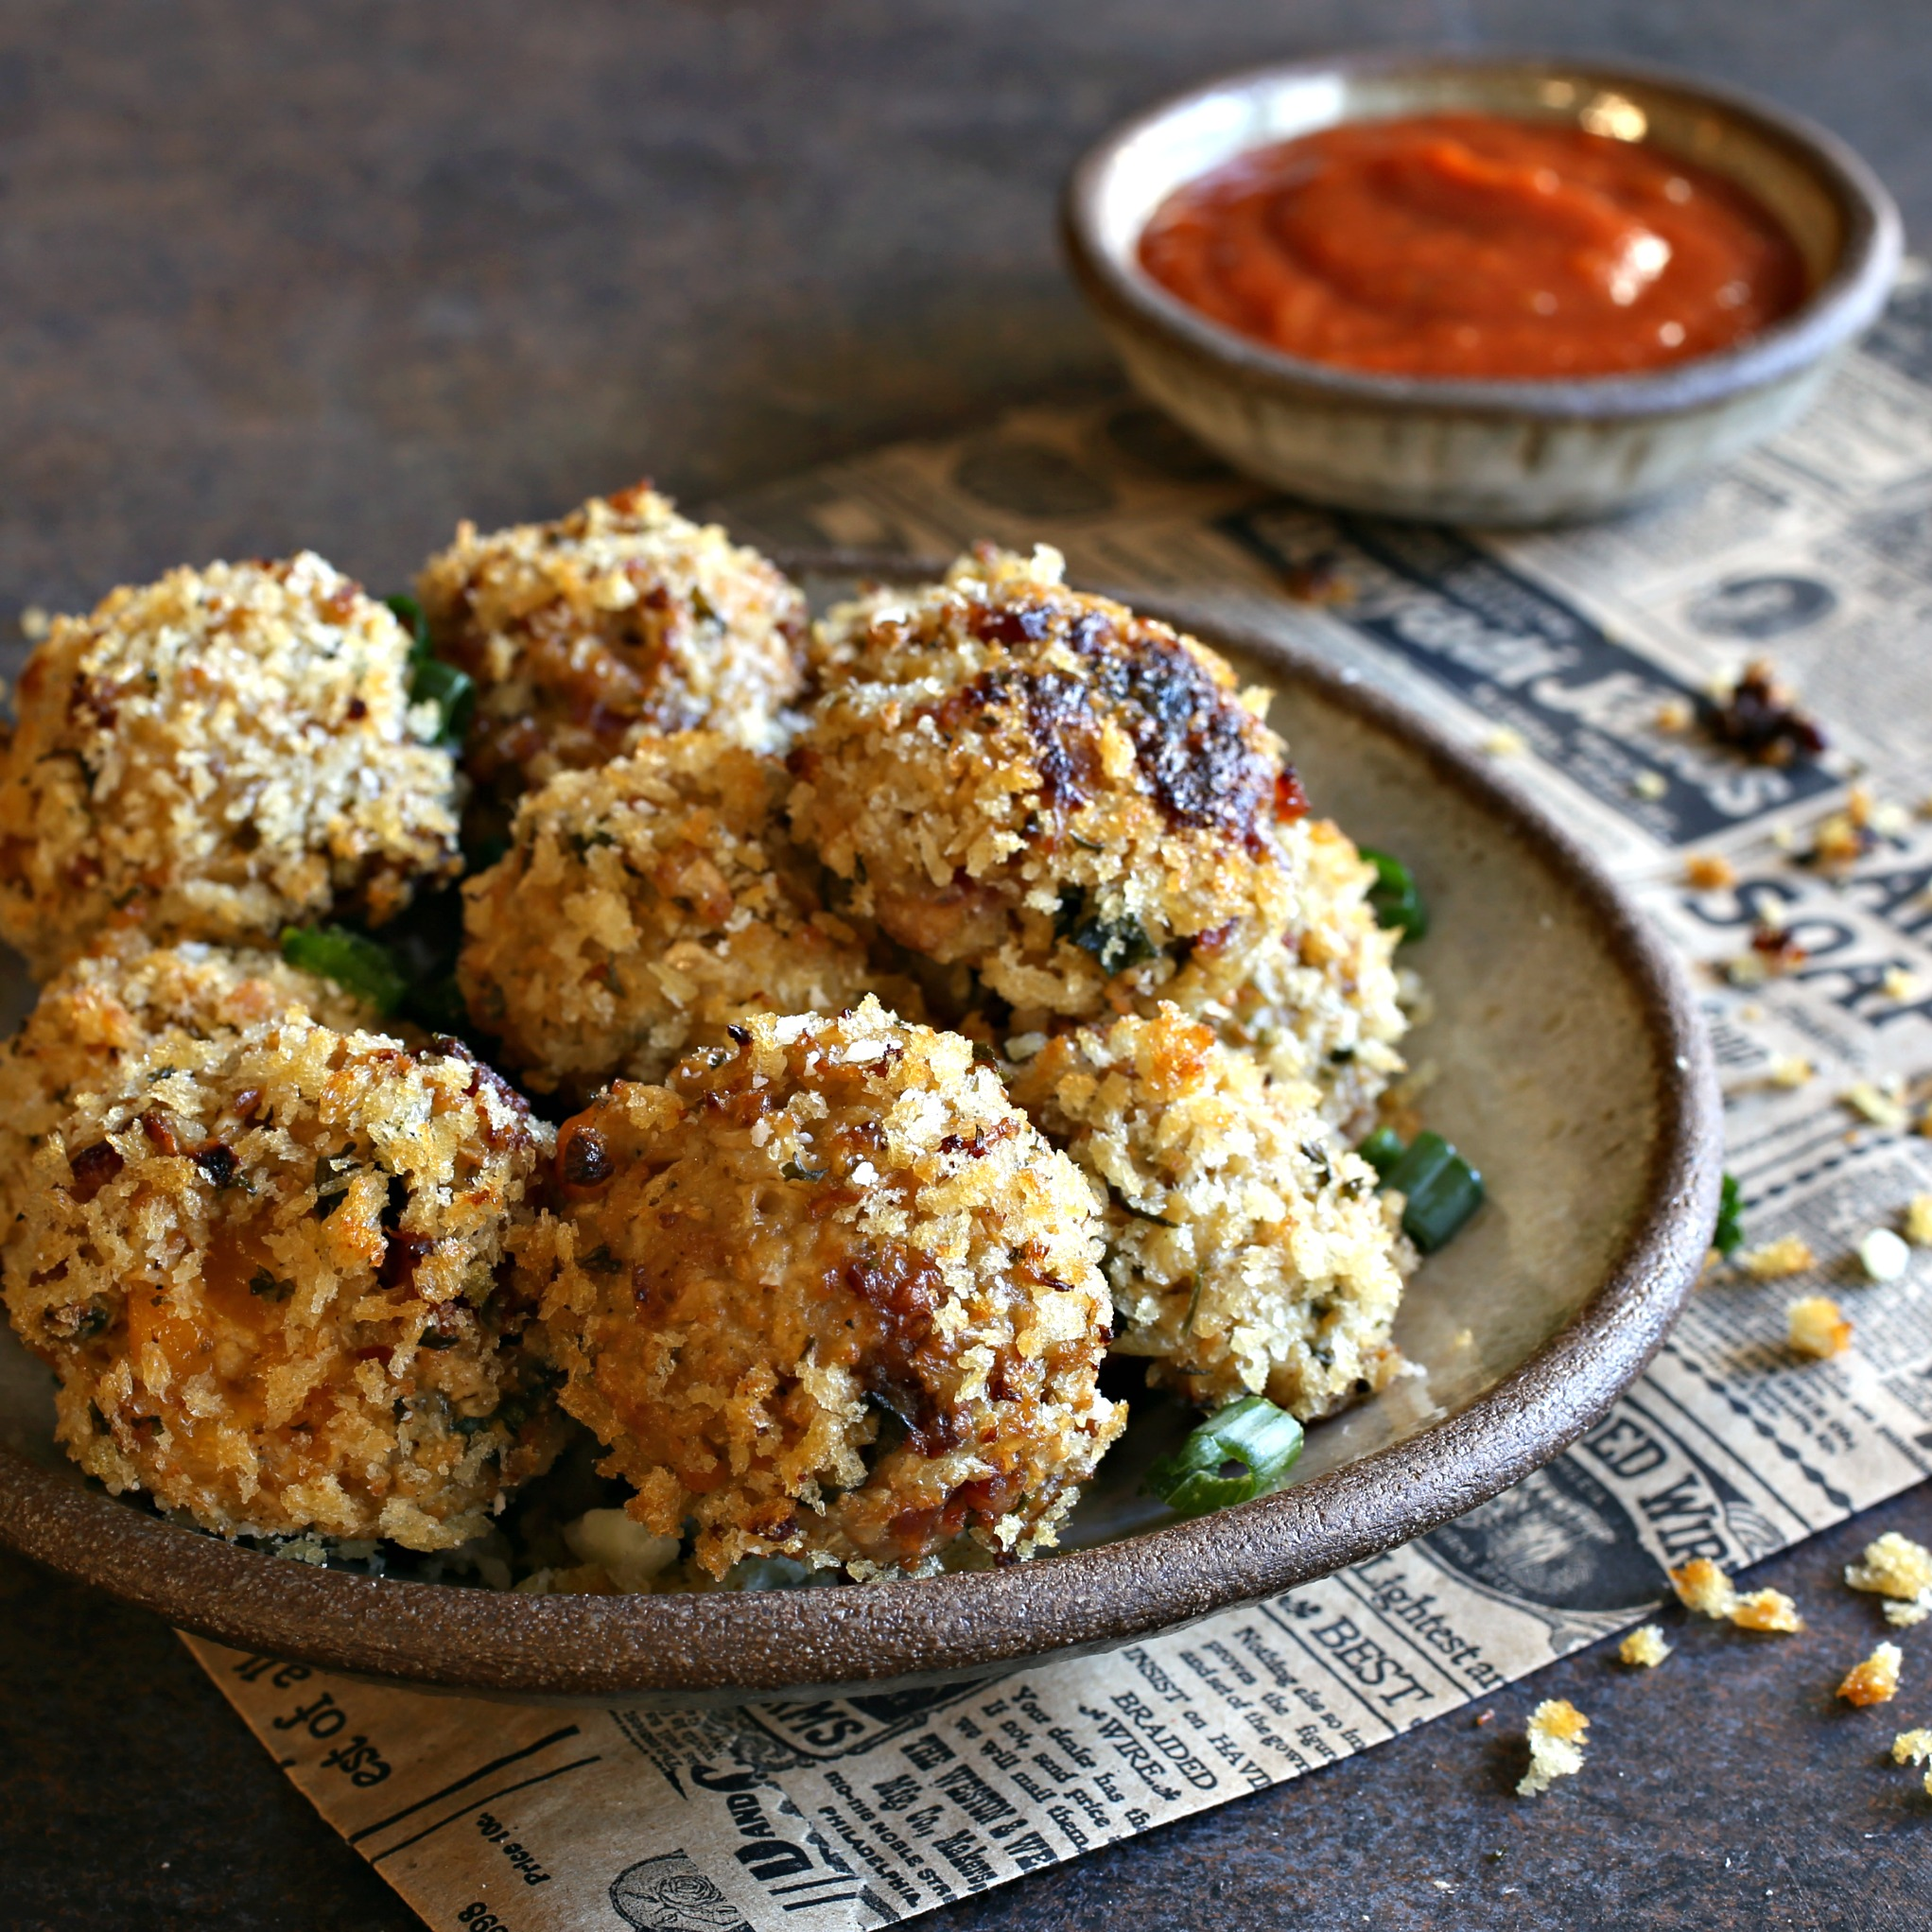 Recipe for baked rice balls made with cauliflower rice, bacon and a cheesy cheddar center.